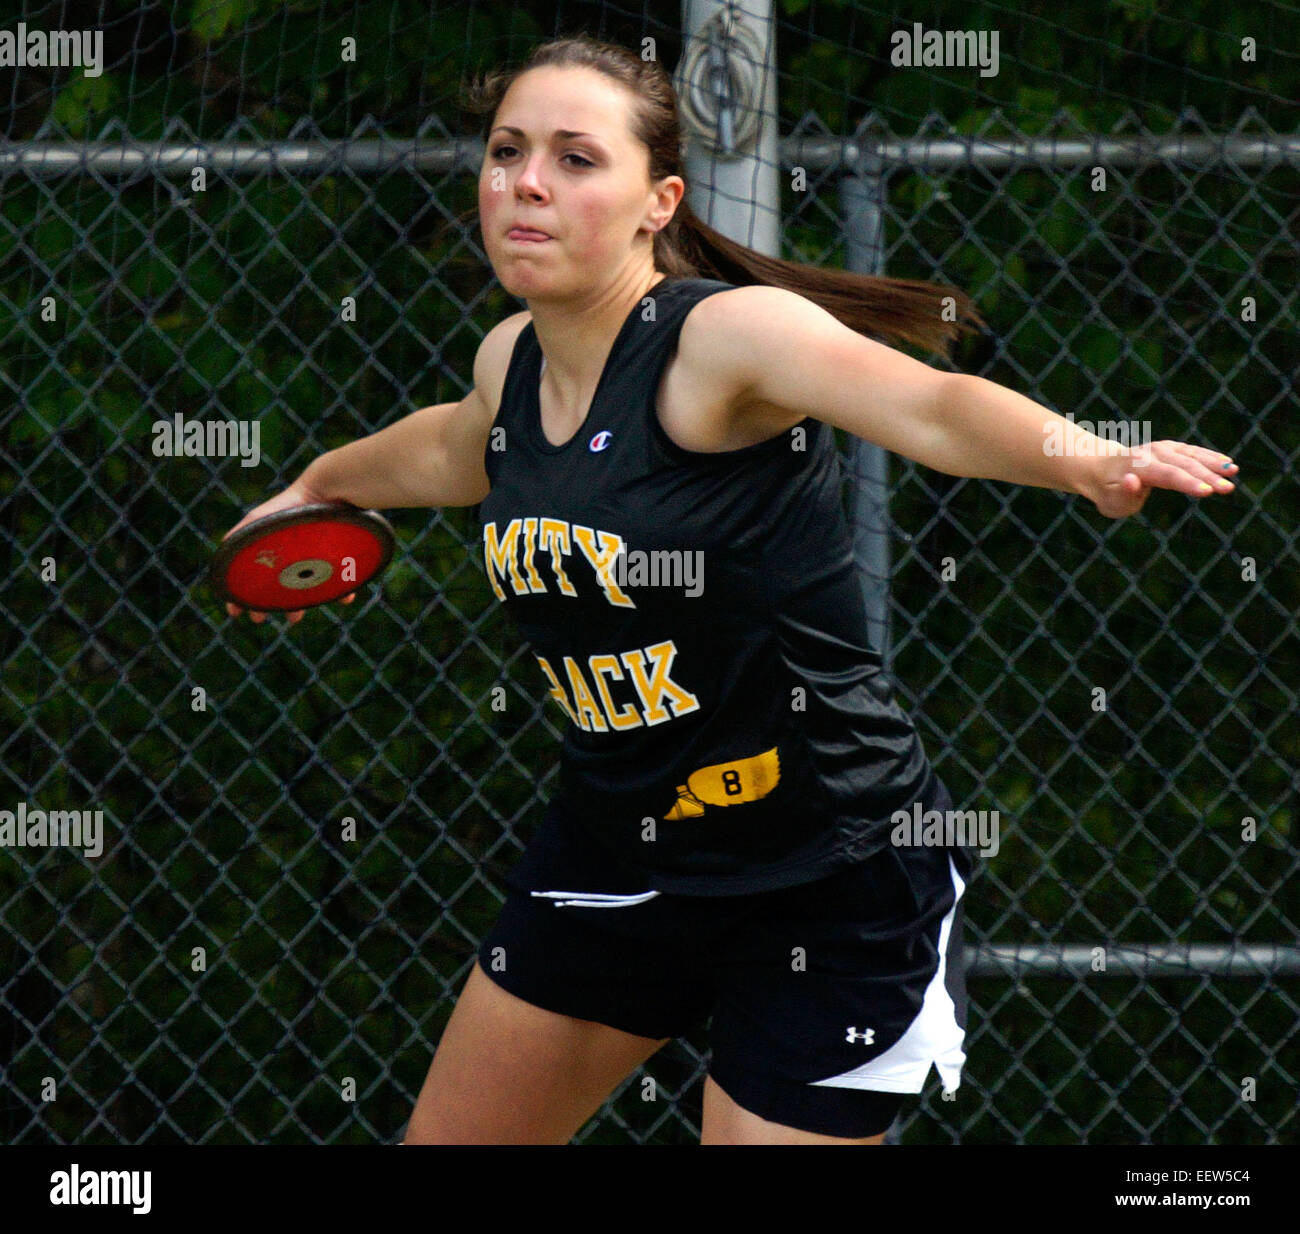 Amity, CT USA-- Amity's Katherine Simon throws 98' during the discus at SCC East Sectional Track Meet.  - Stock Image